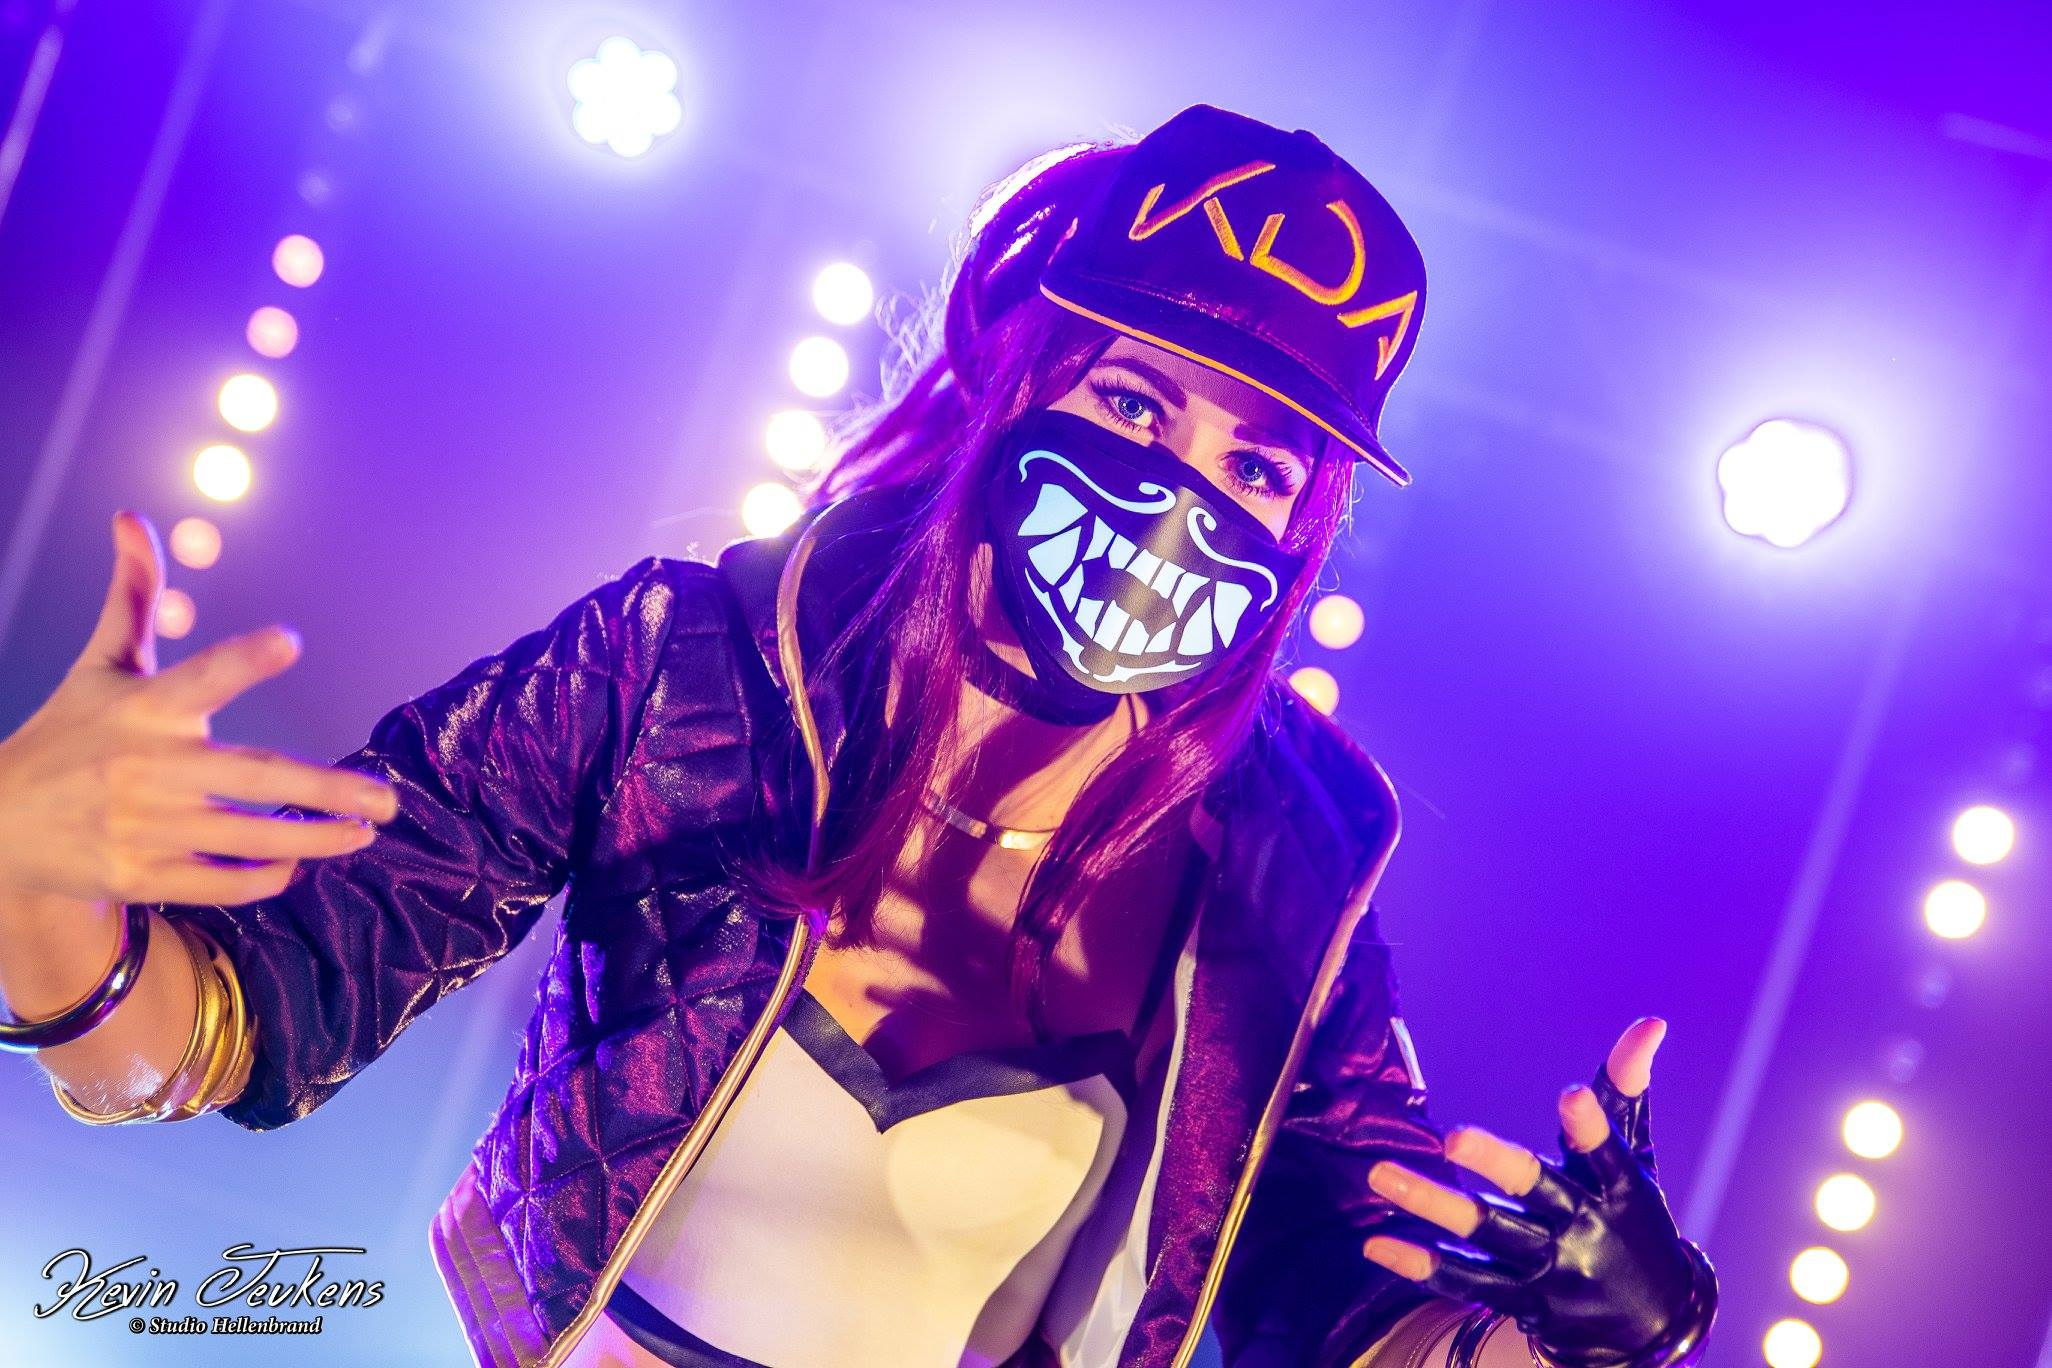 Akali inspired K/DA LED mask (voice)